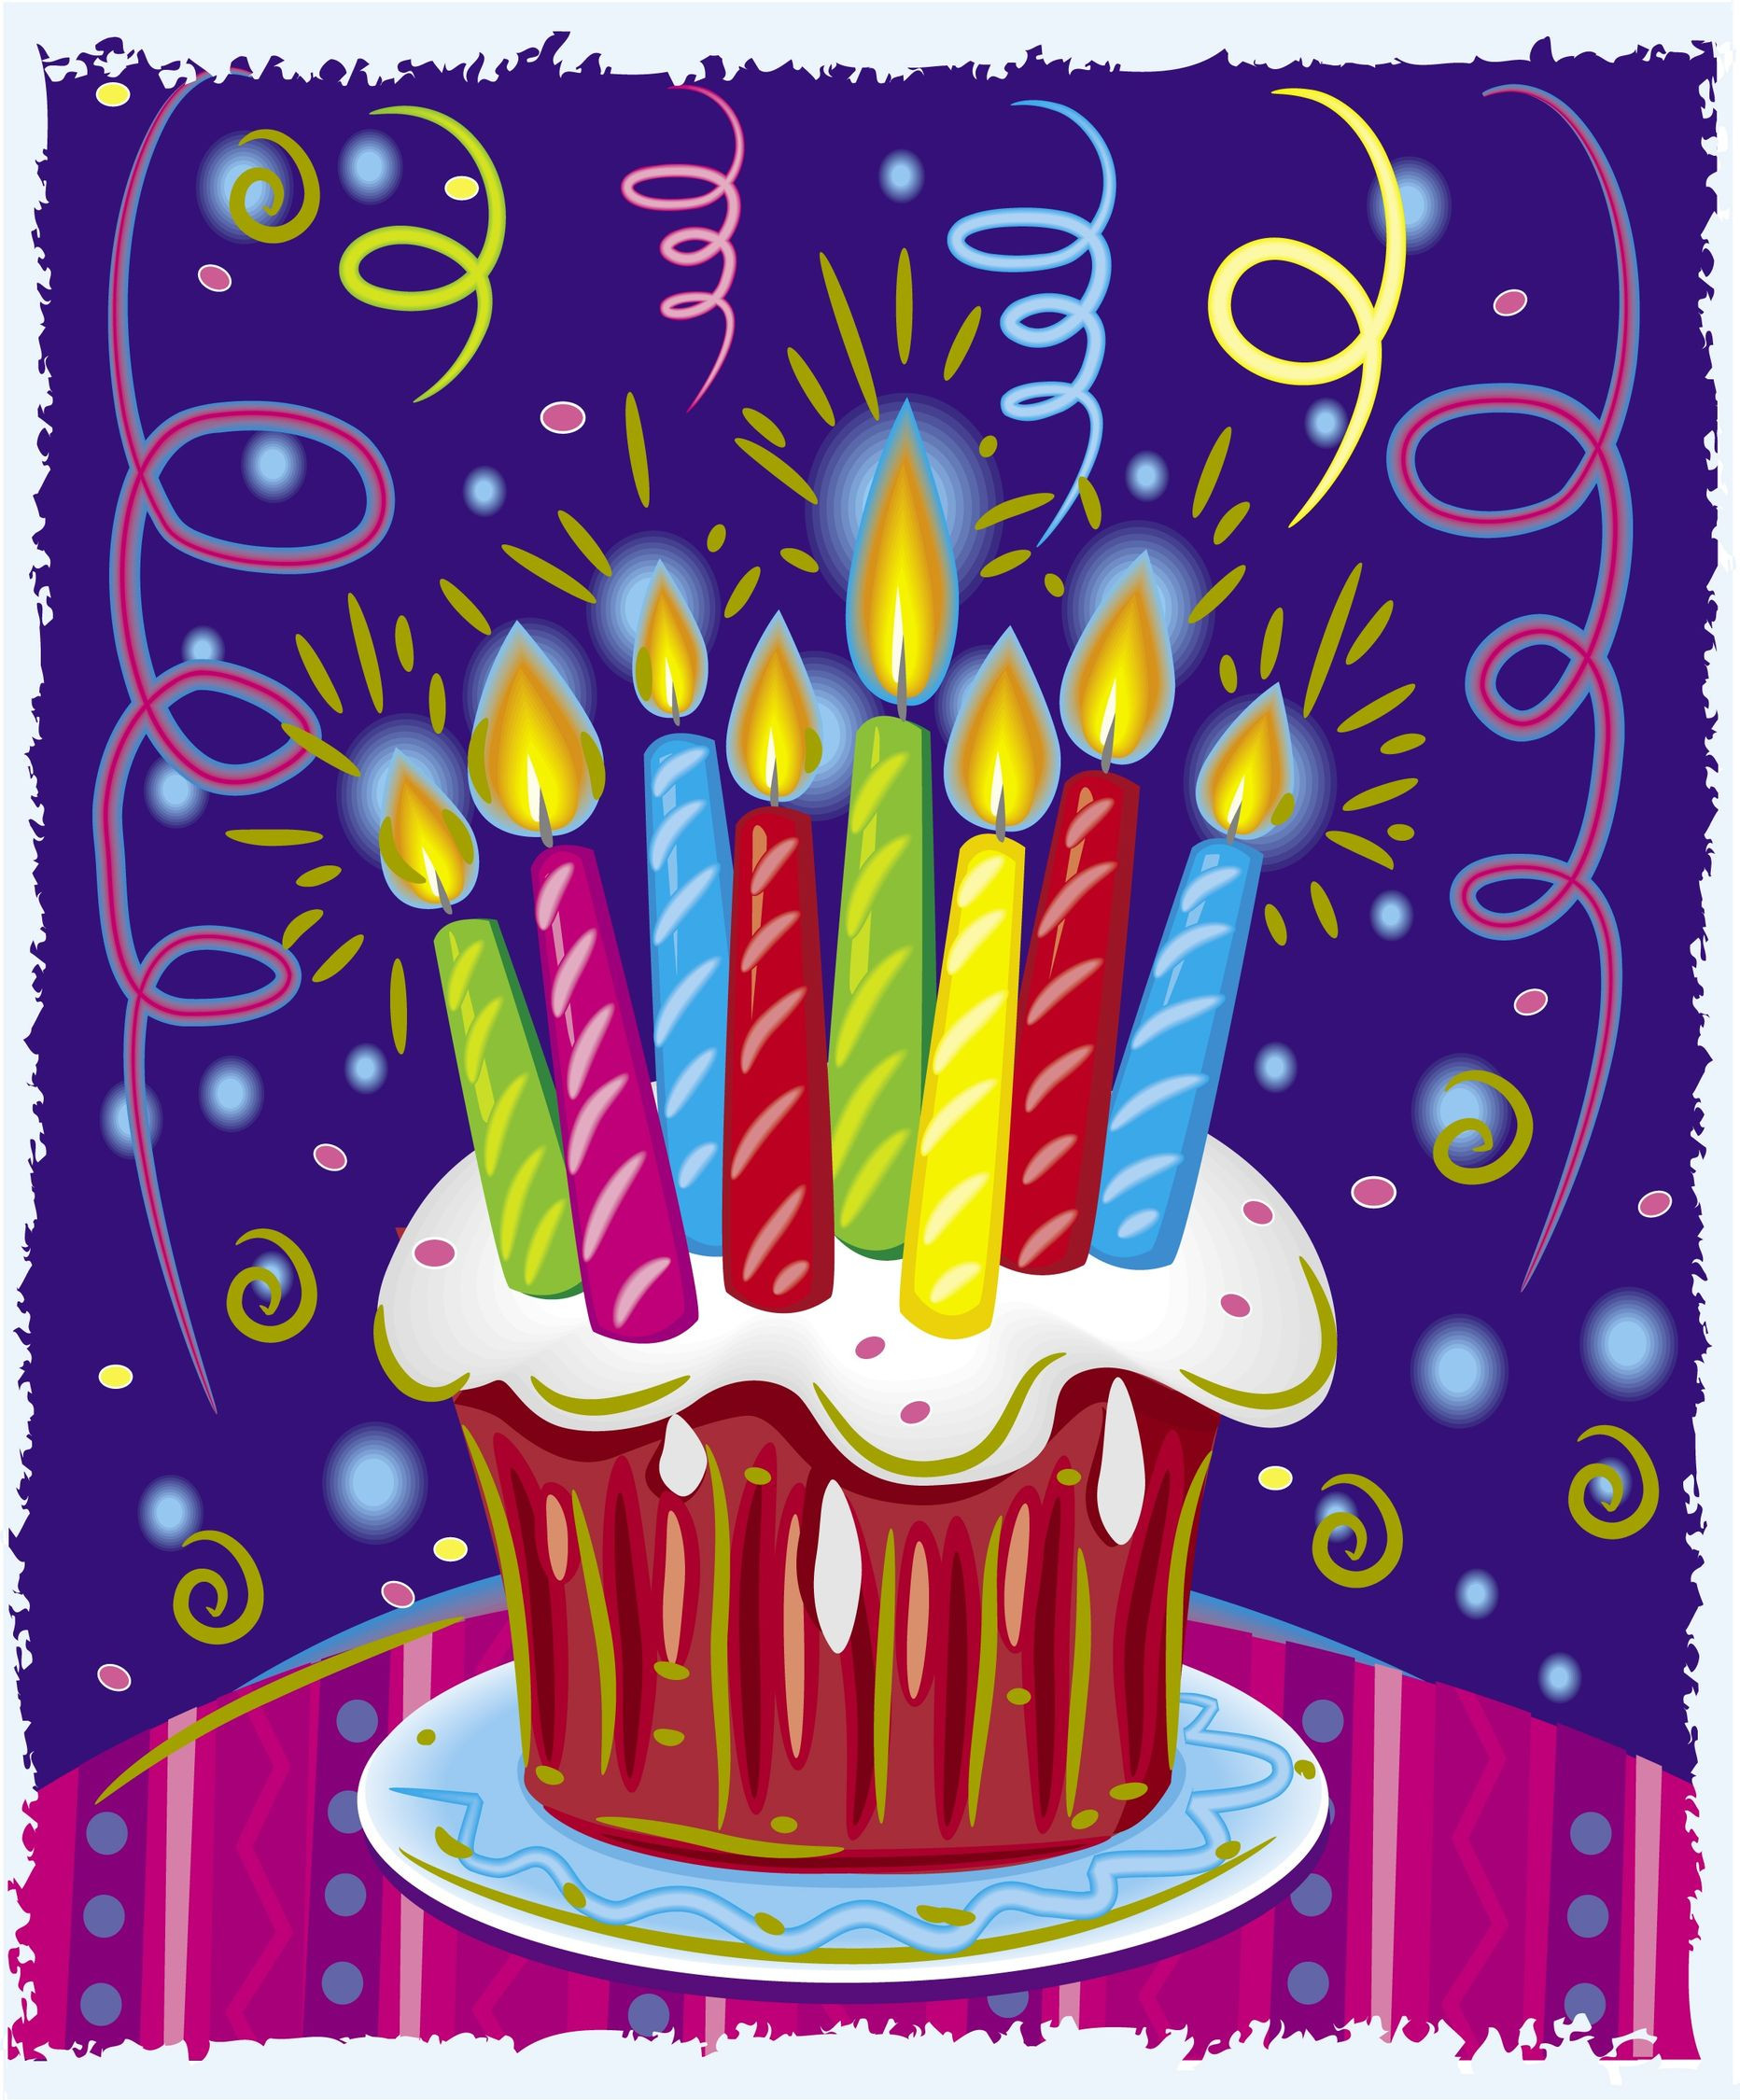 When Did Adding Candles To The Birthday Cake Originated  Why do we put candles on a birthday cake